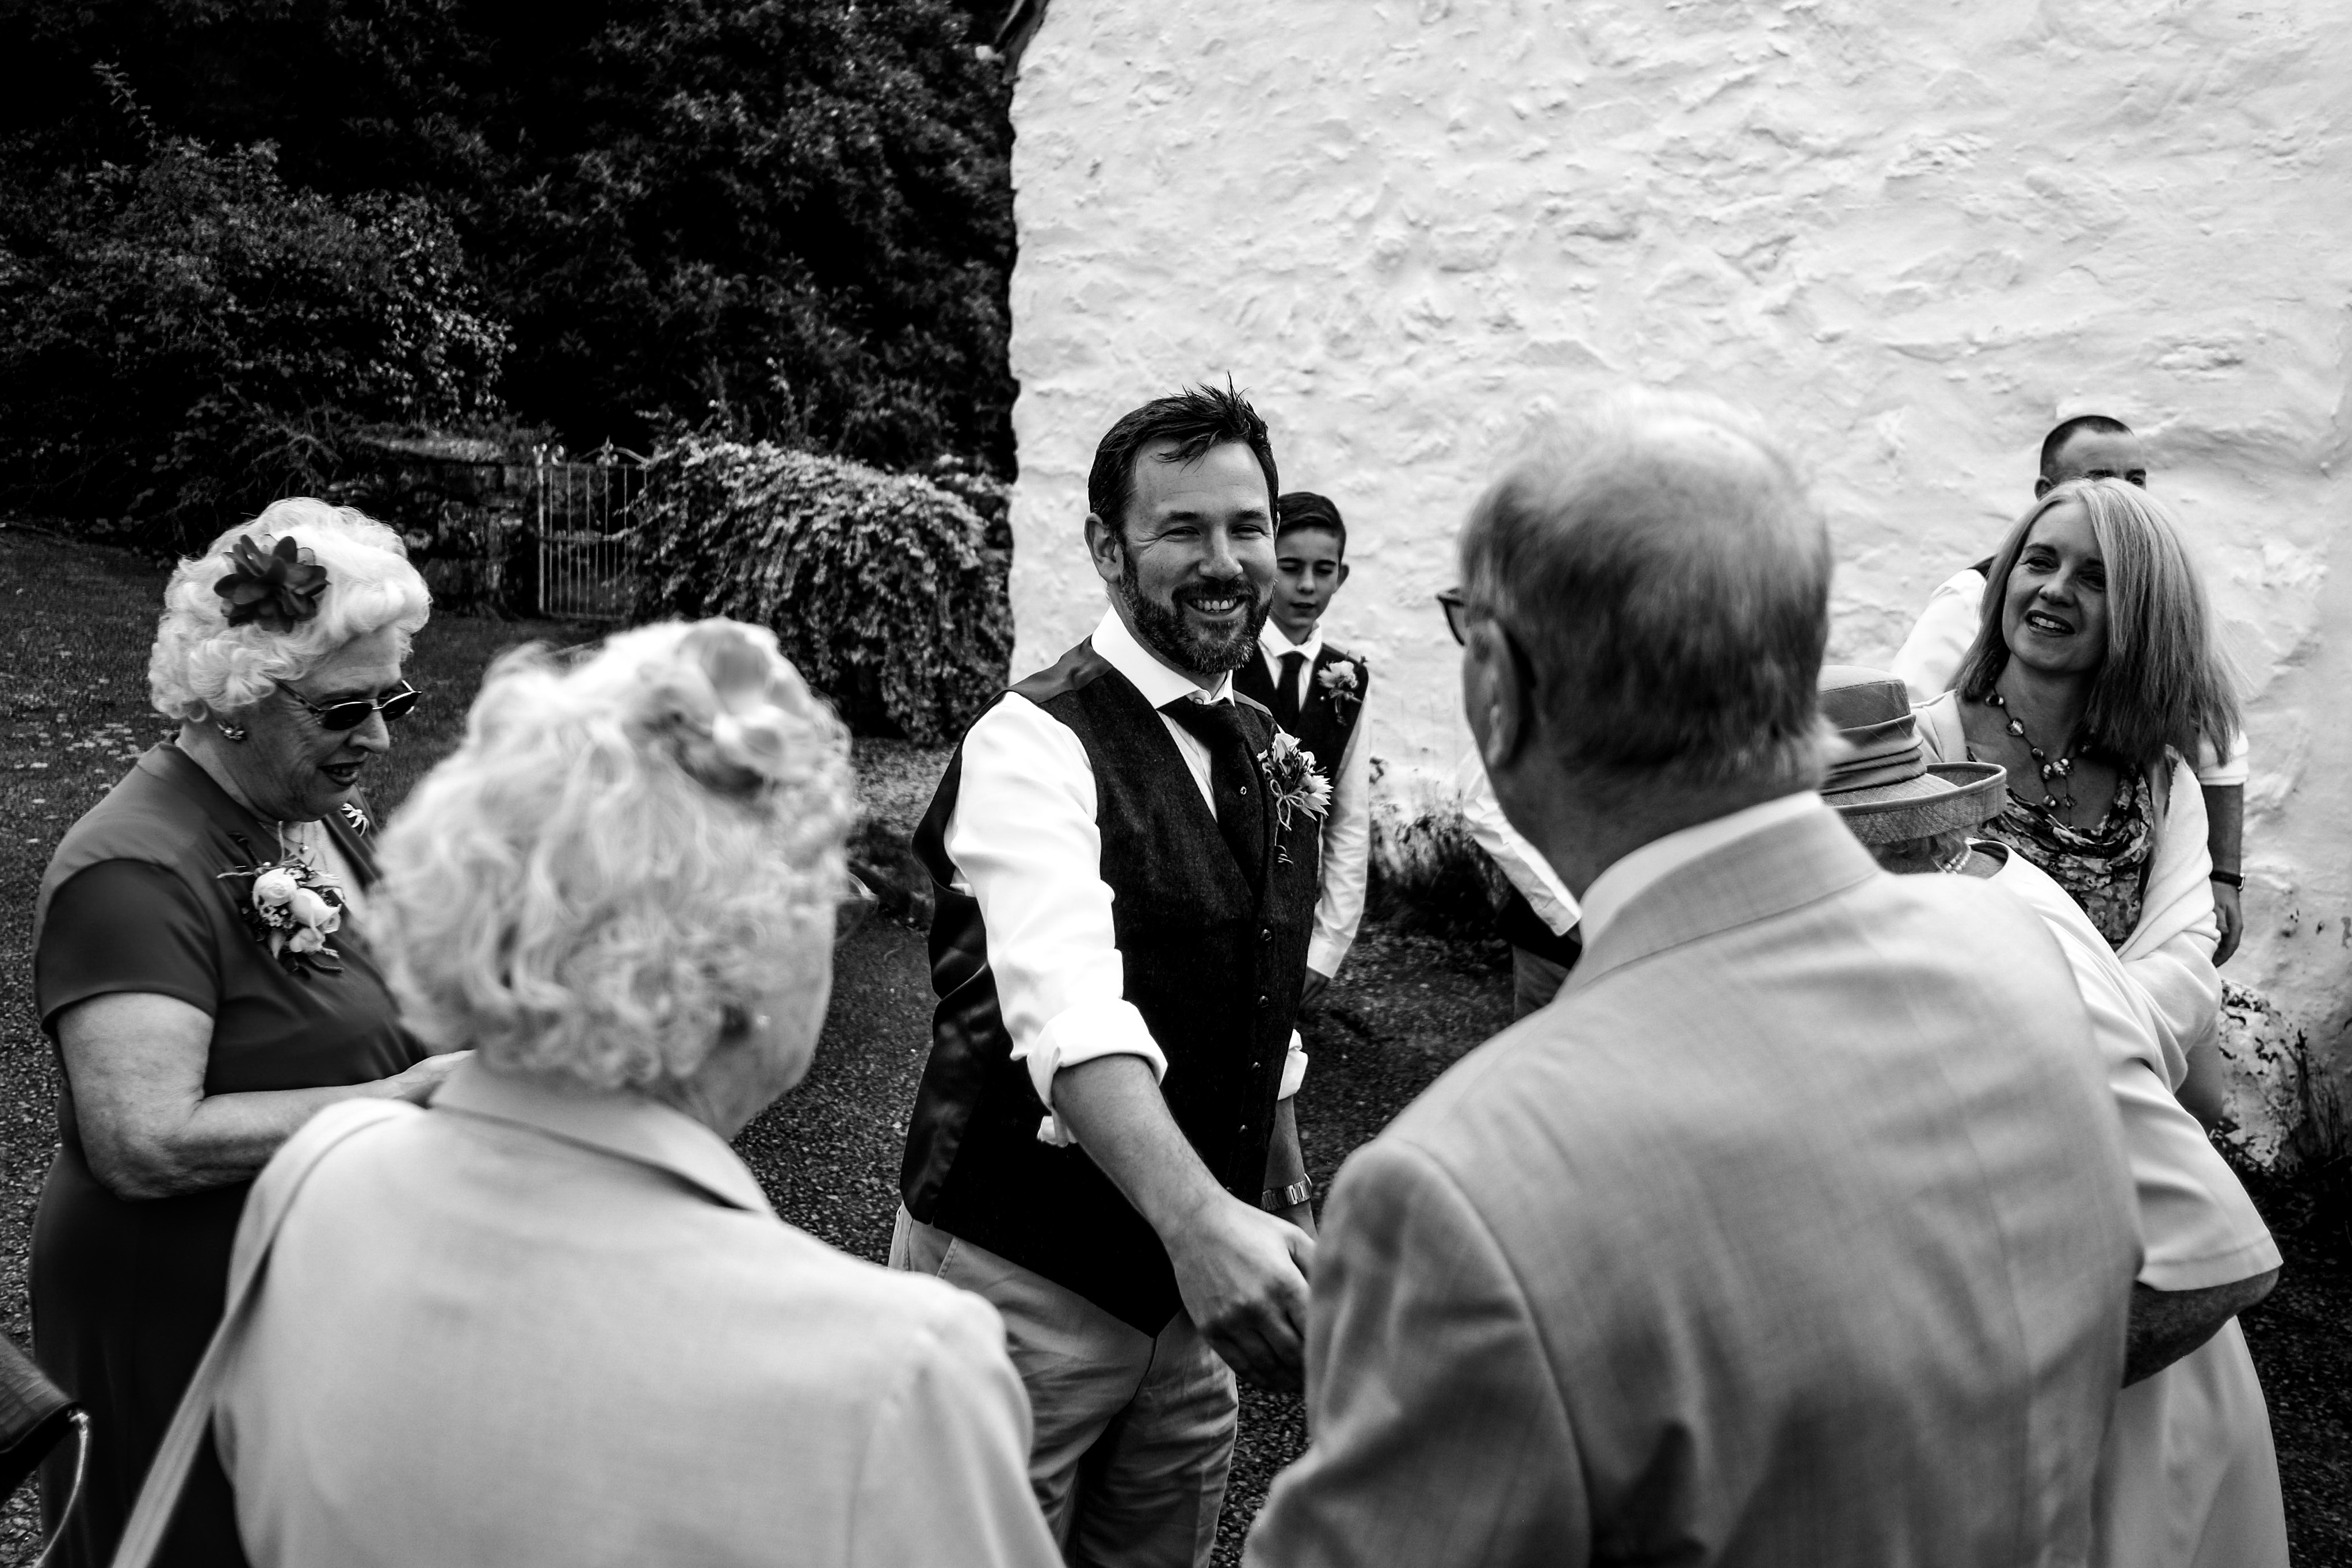 Groom greeting his family lot's of smiles and laughter.